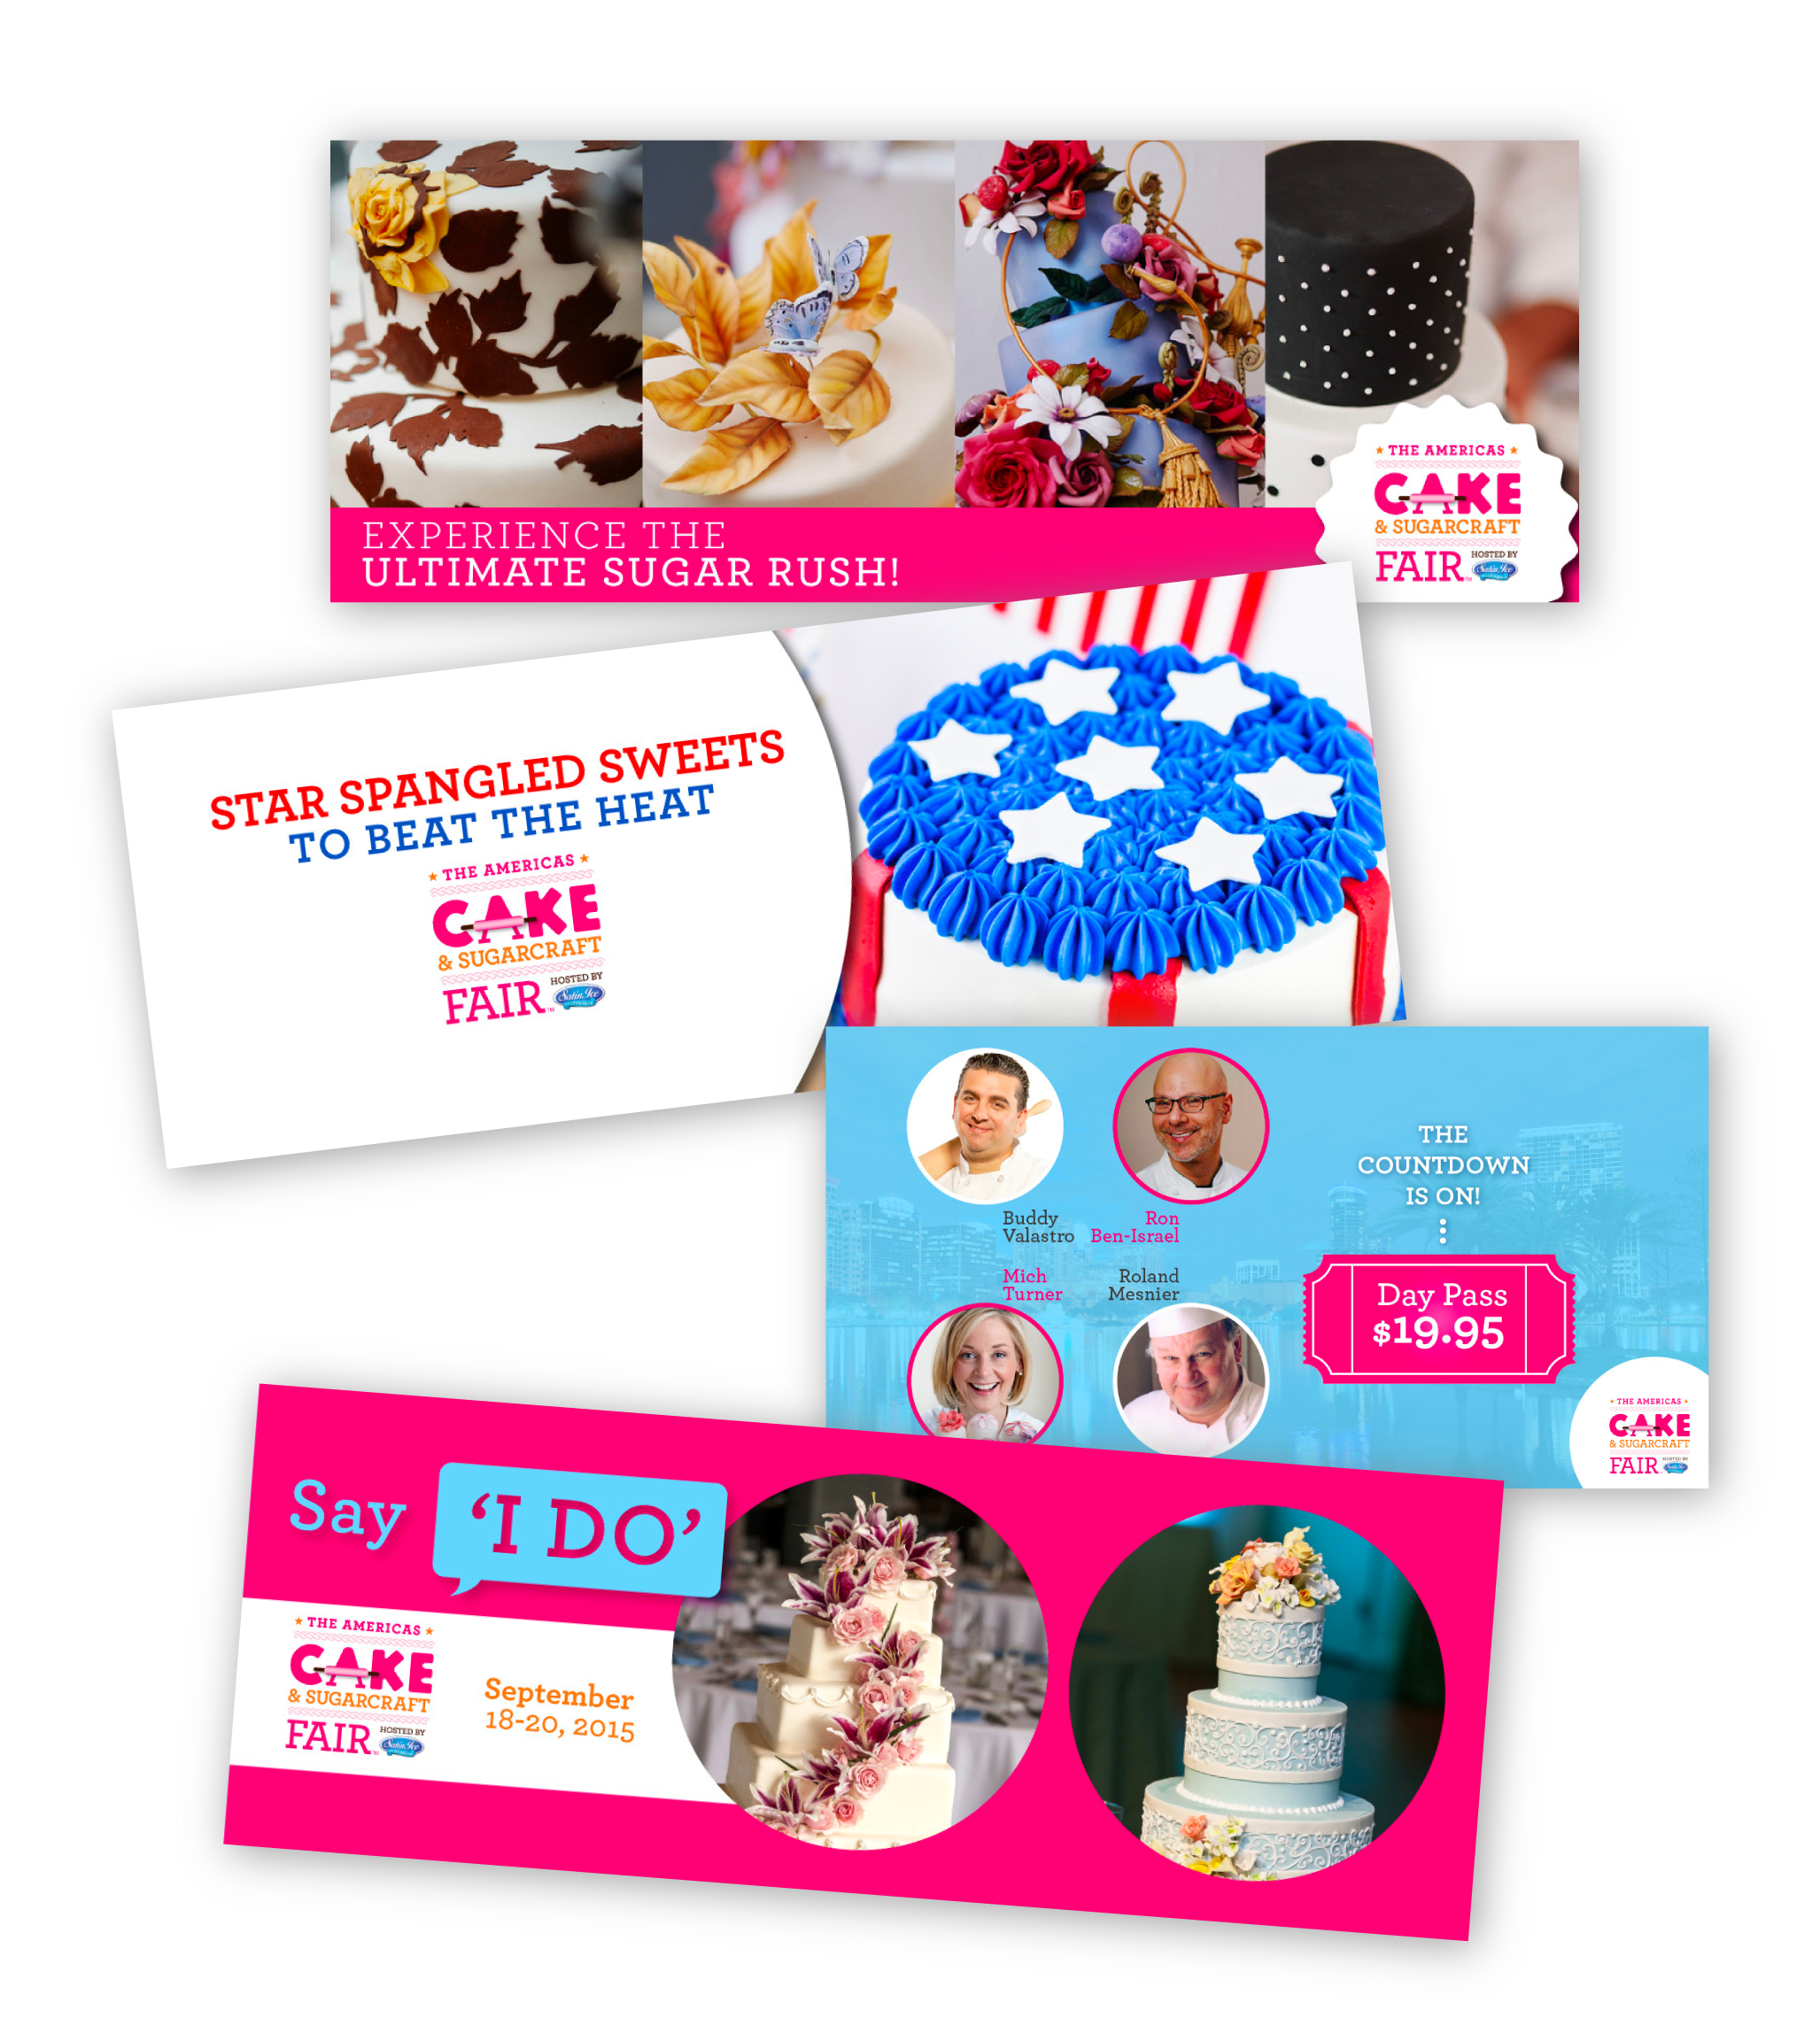 Co Website Images Cake Fair Slider 18 1